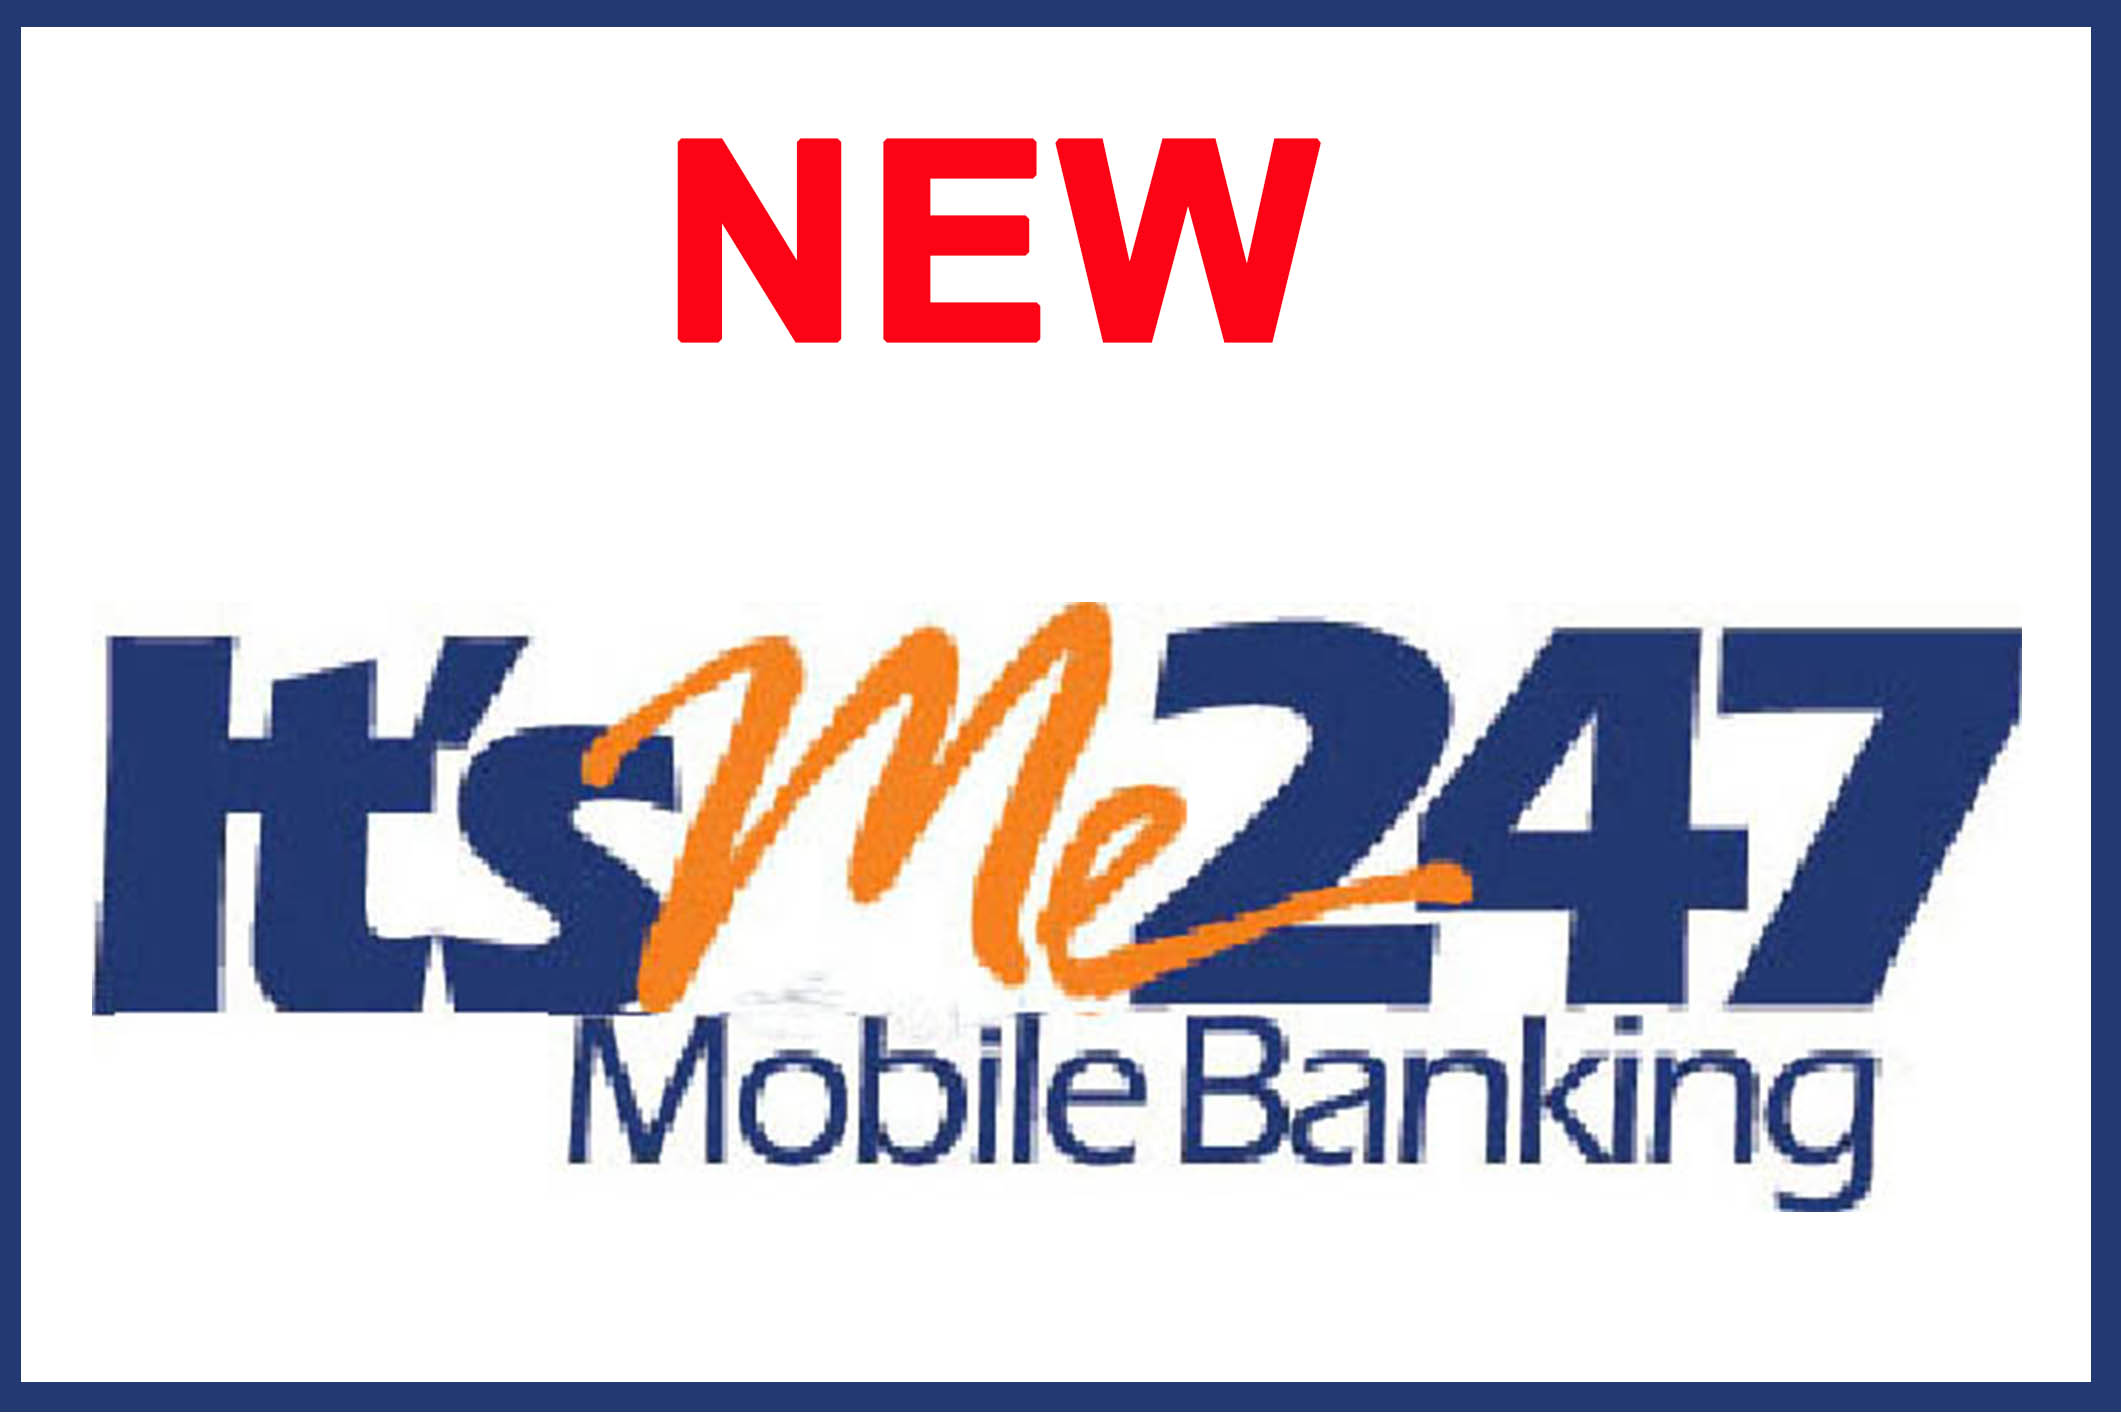 New Mobile Banking